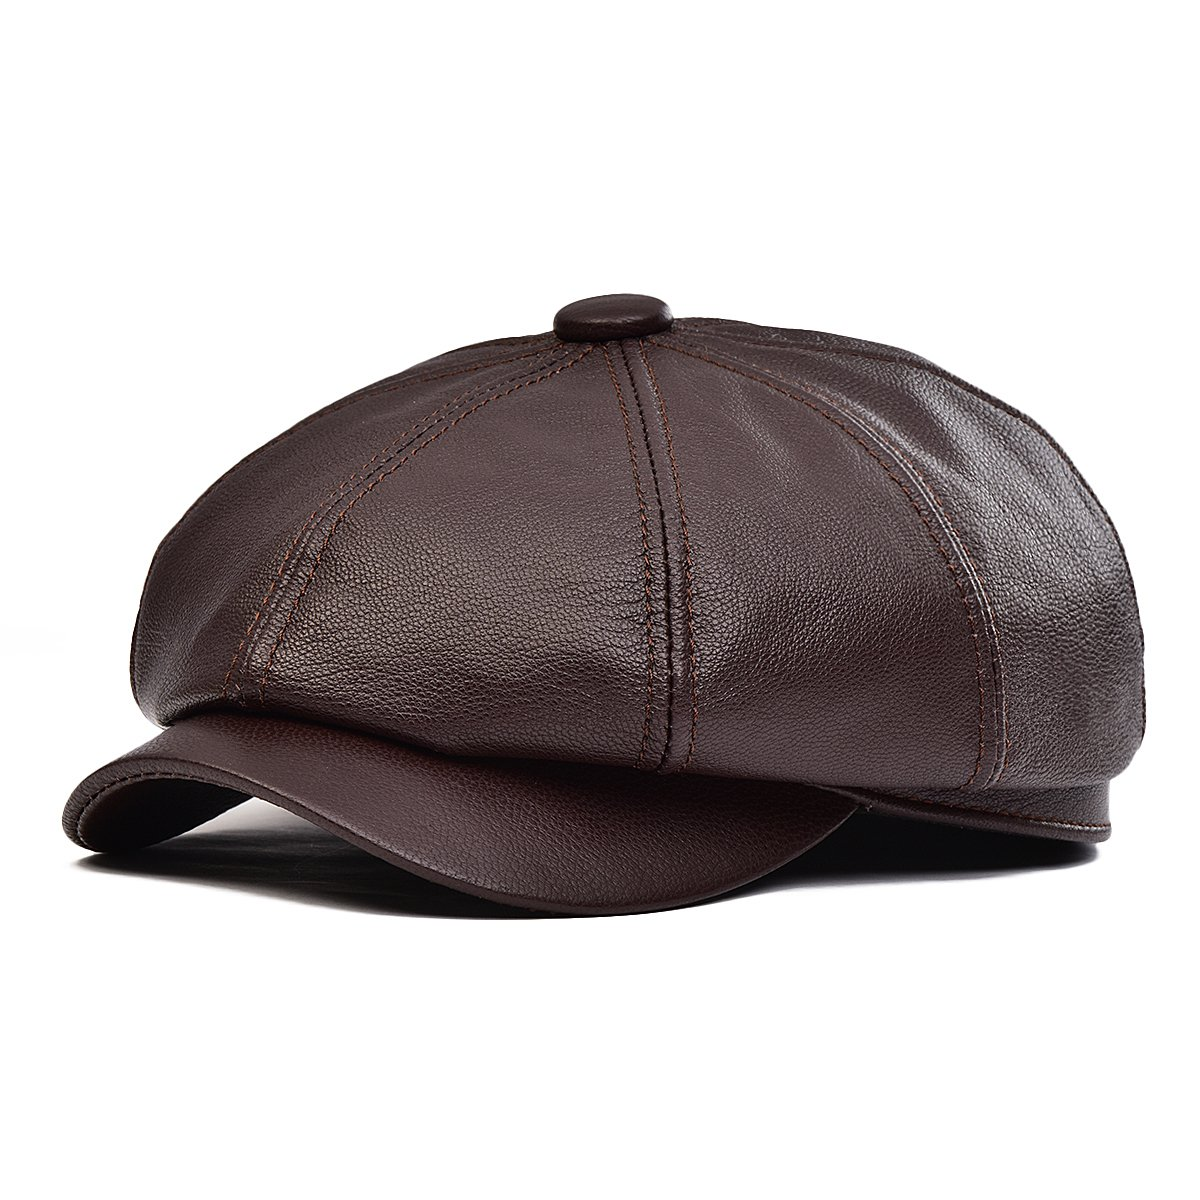 VOBOOM 100% Lambskin Leather Ivy Hat Eight Pannel Cabbie Newsboy Beret Cap